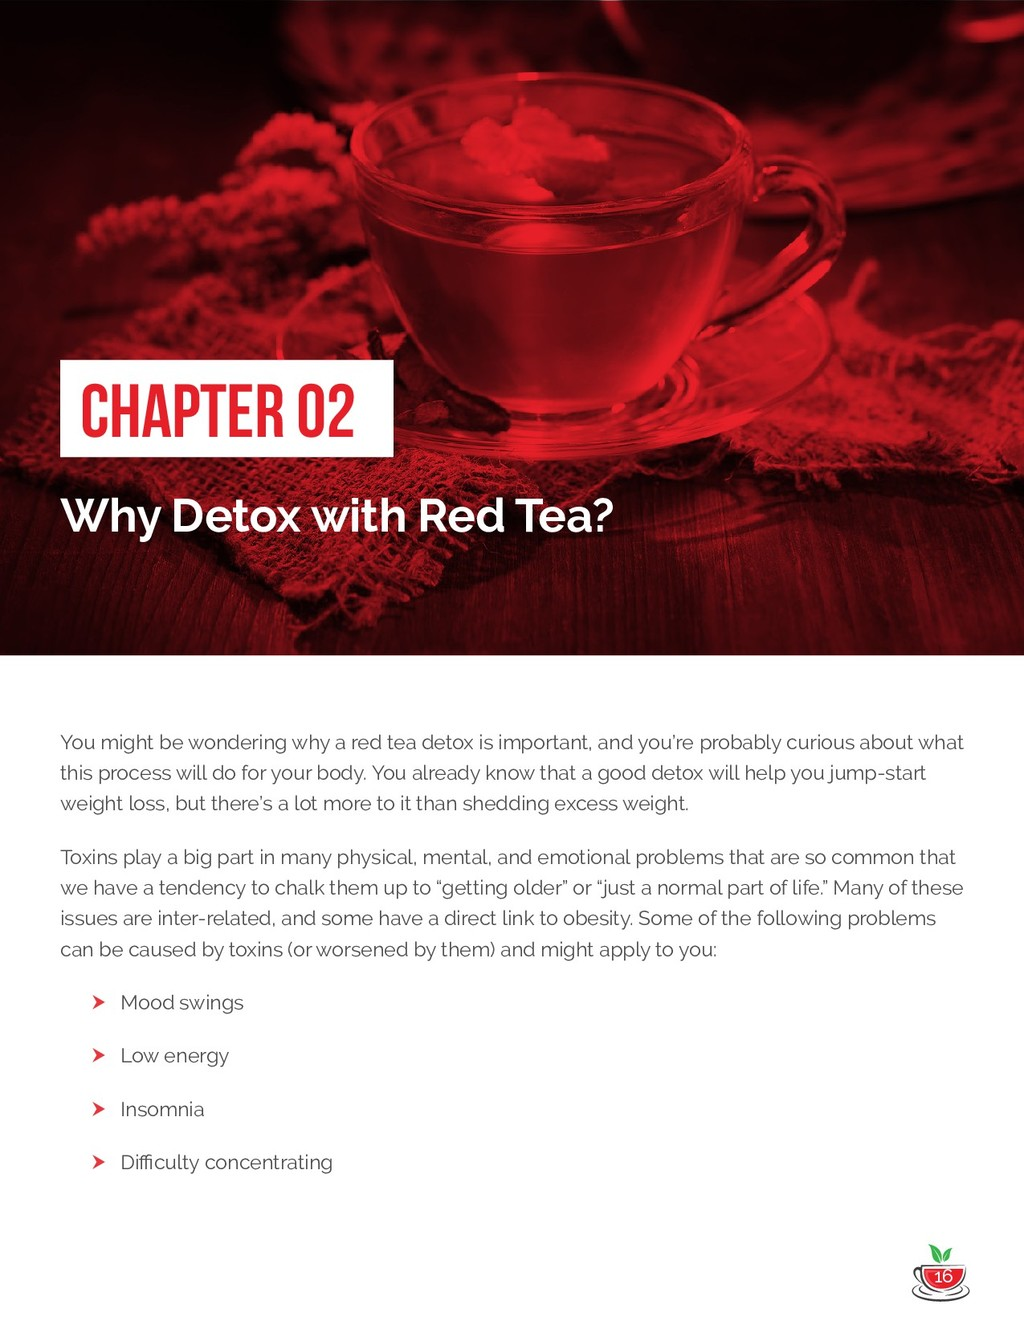 16 Chapter 02: Why Detox with Red Tea? Why Deto...